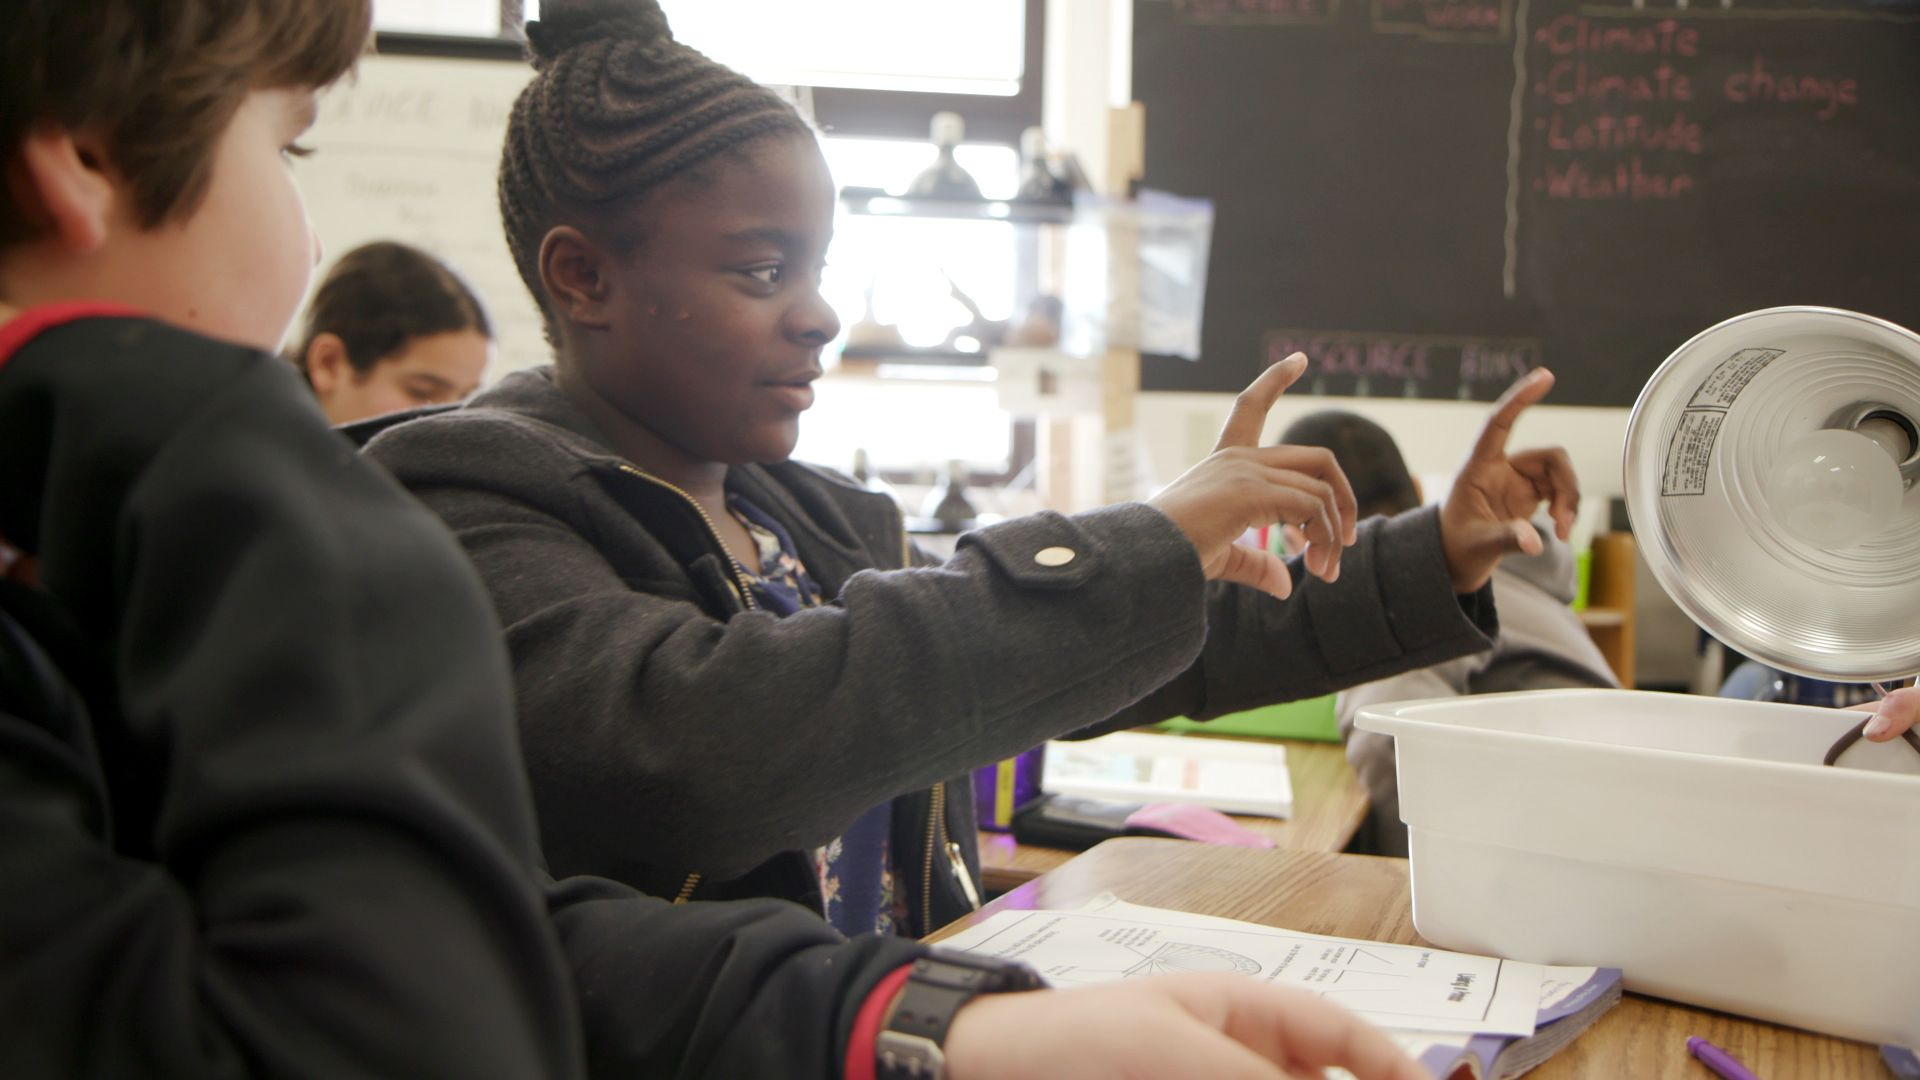 Boosting Student Engagement Through Project-Based Learning | Edutopia